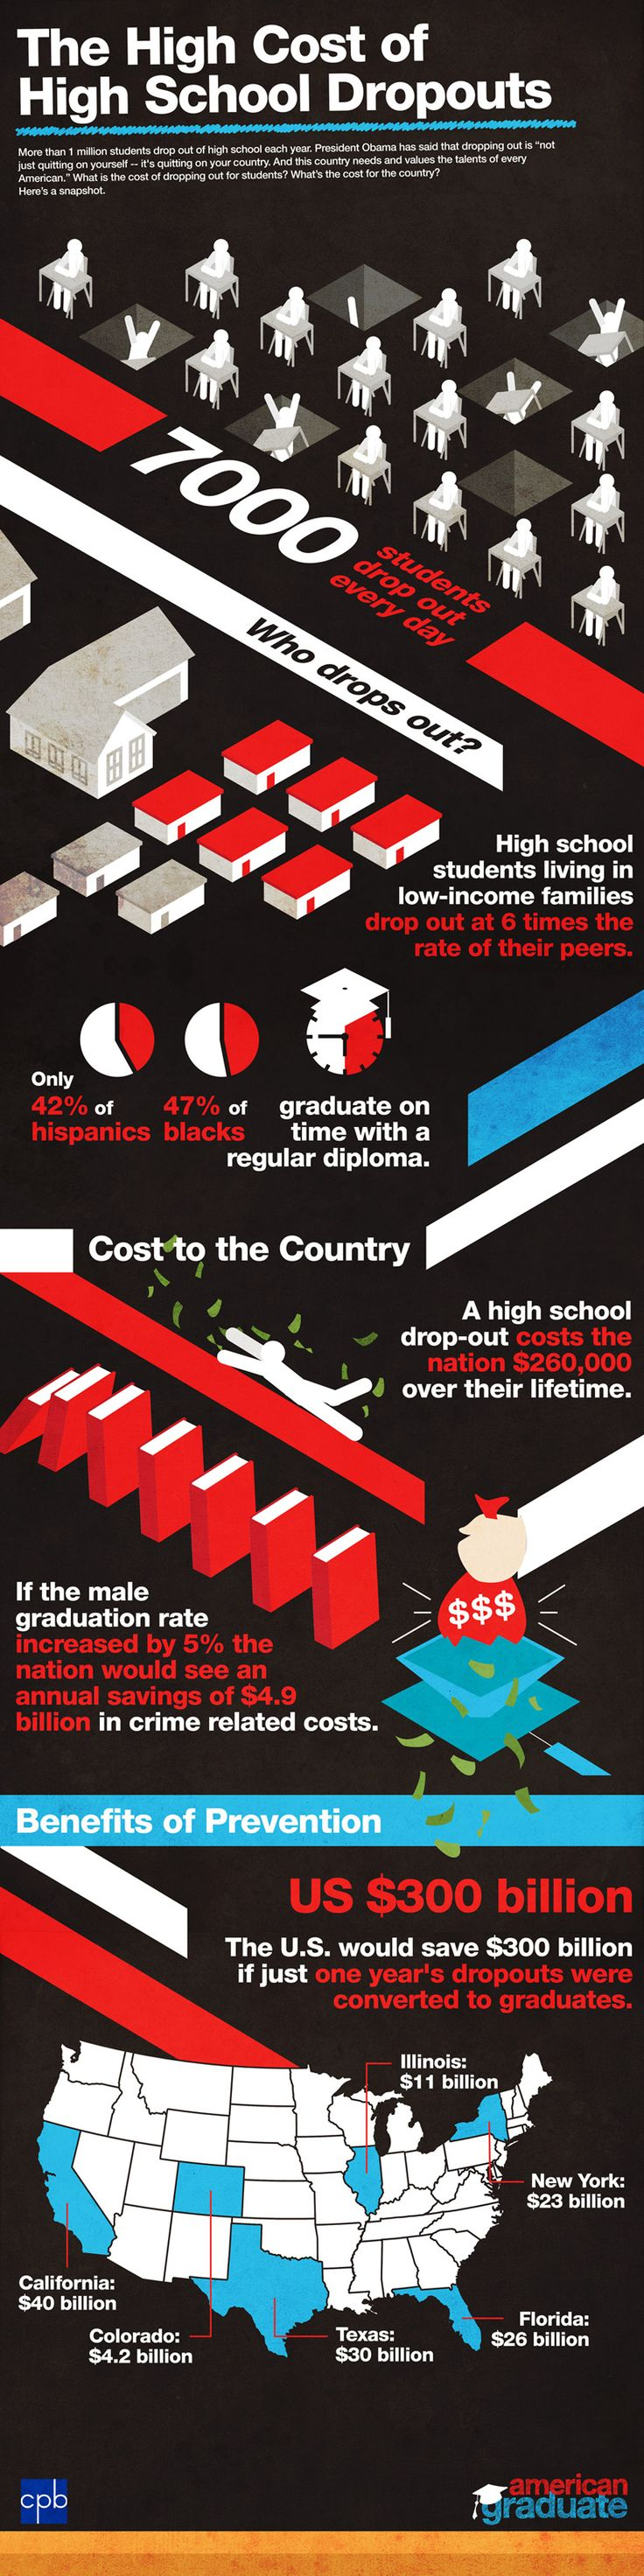 The High Cost Of High School Dropouts